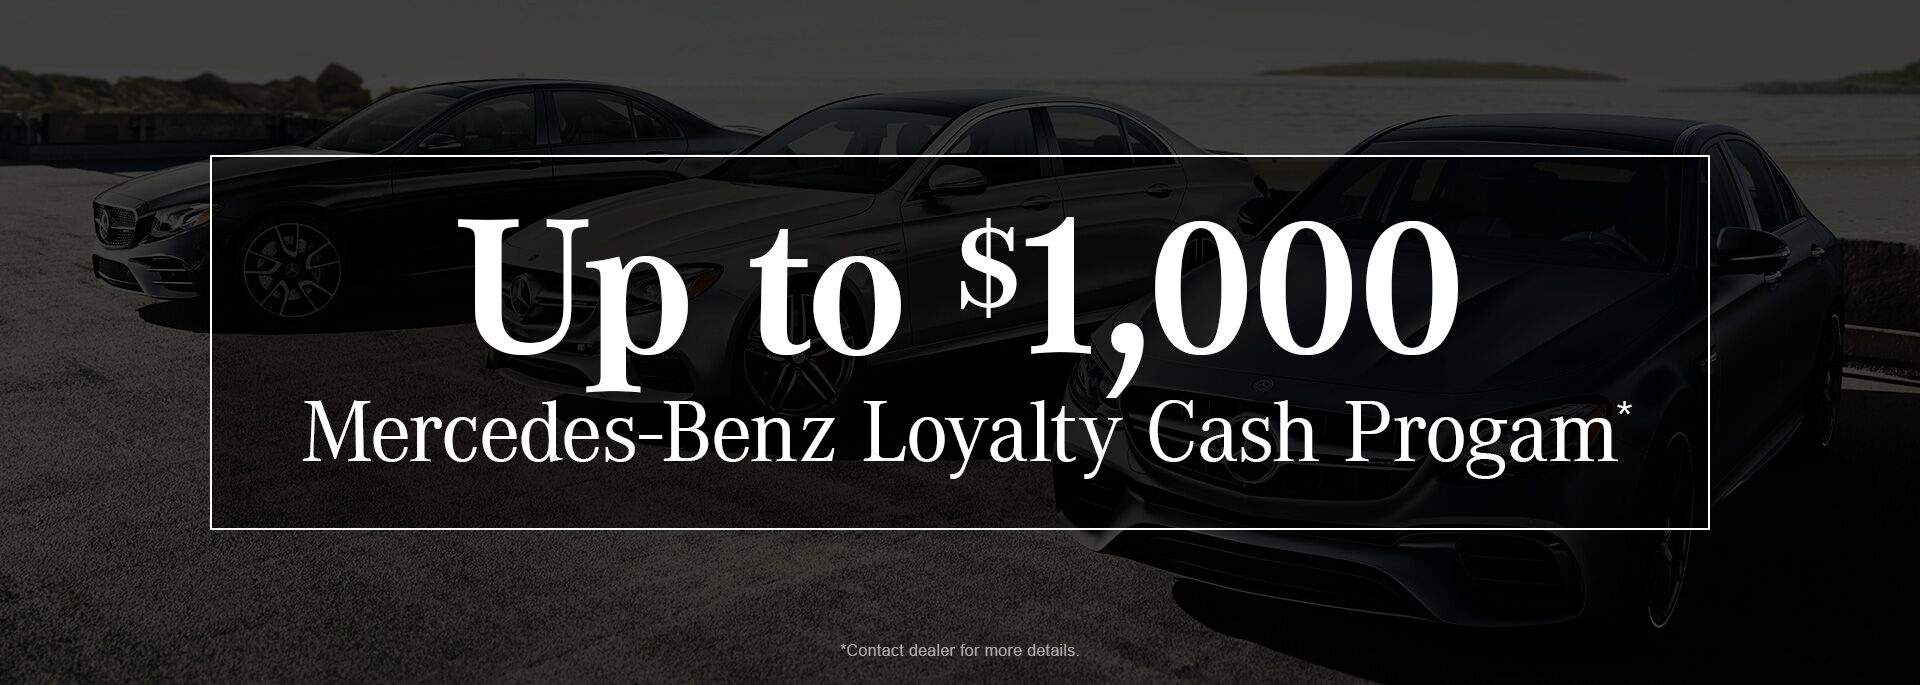 Mercedes-Benz Loyalty Cash Program